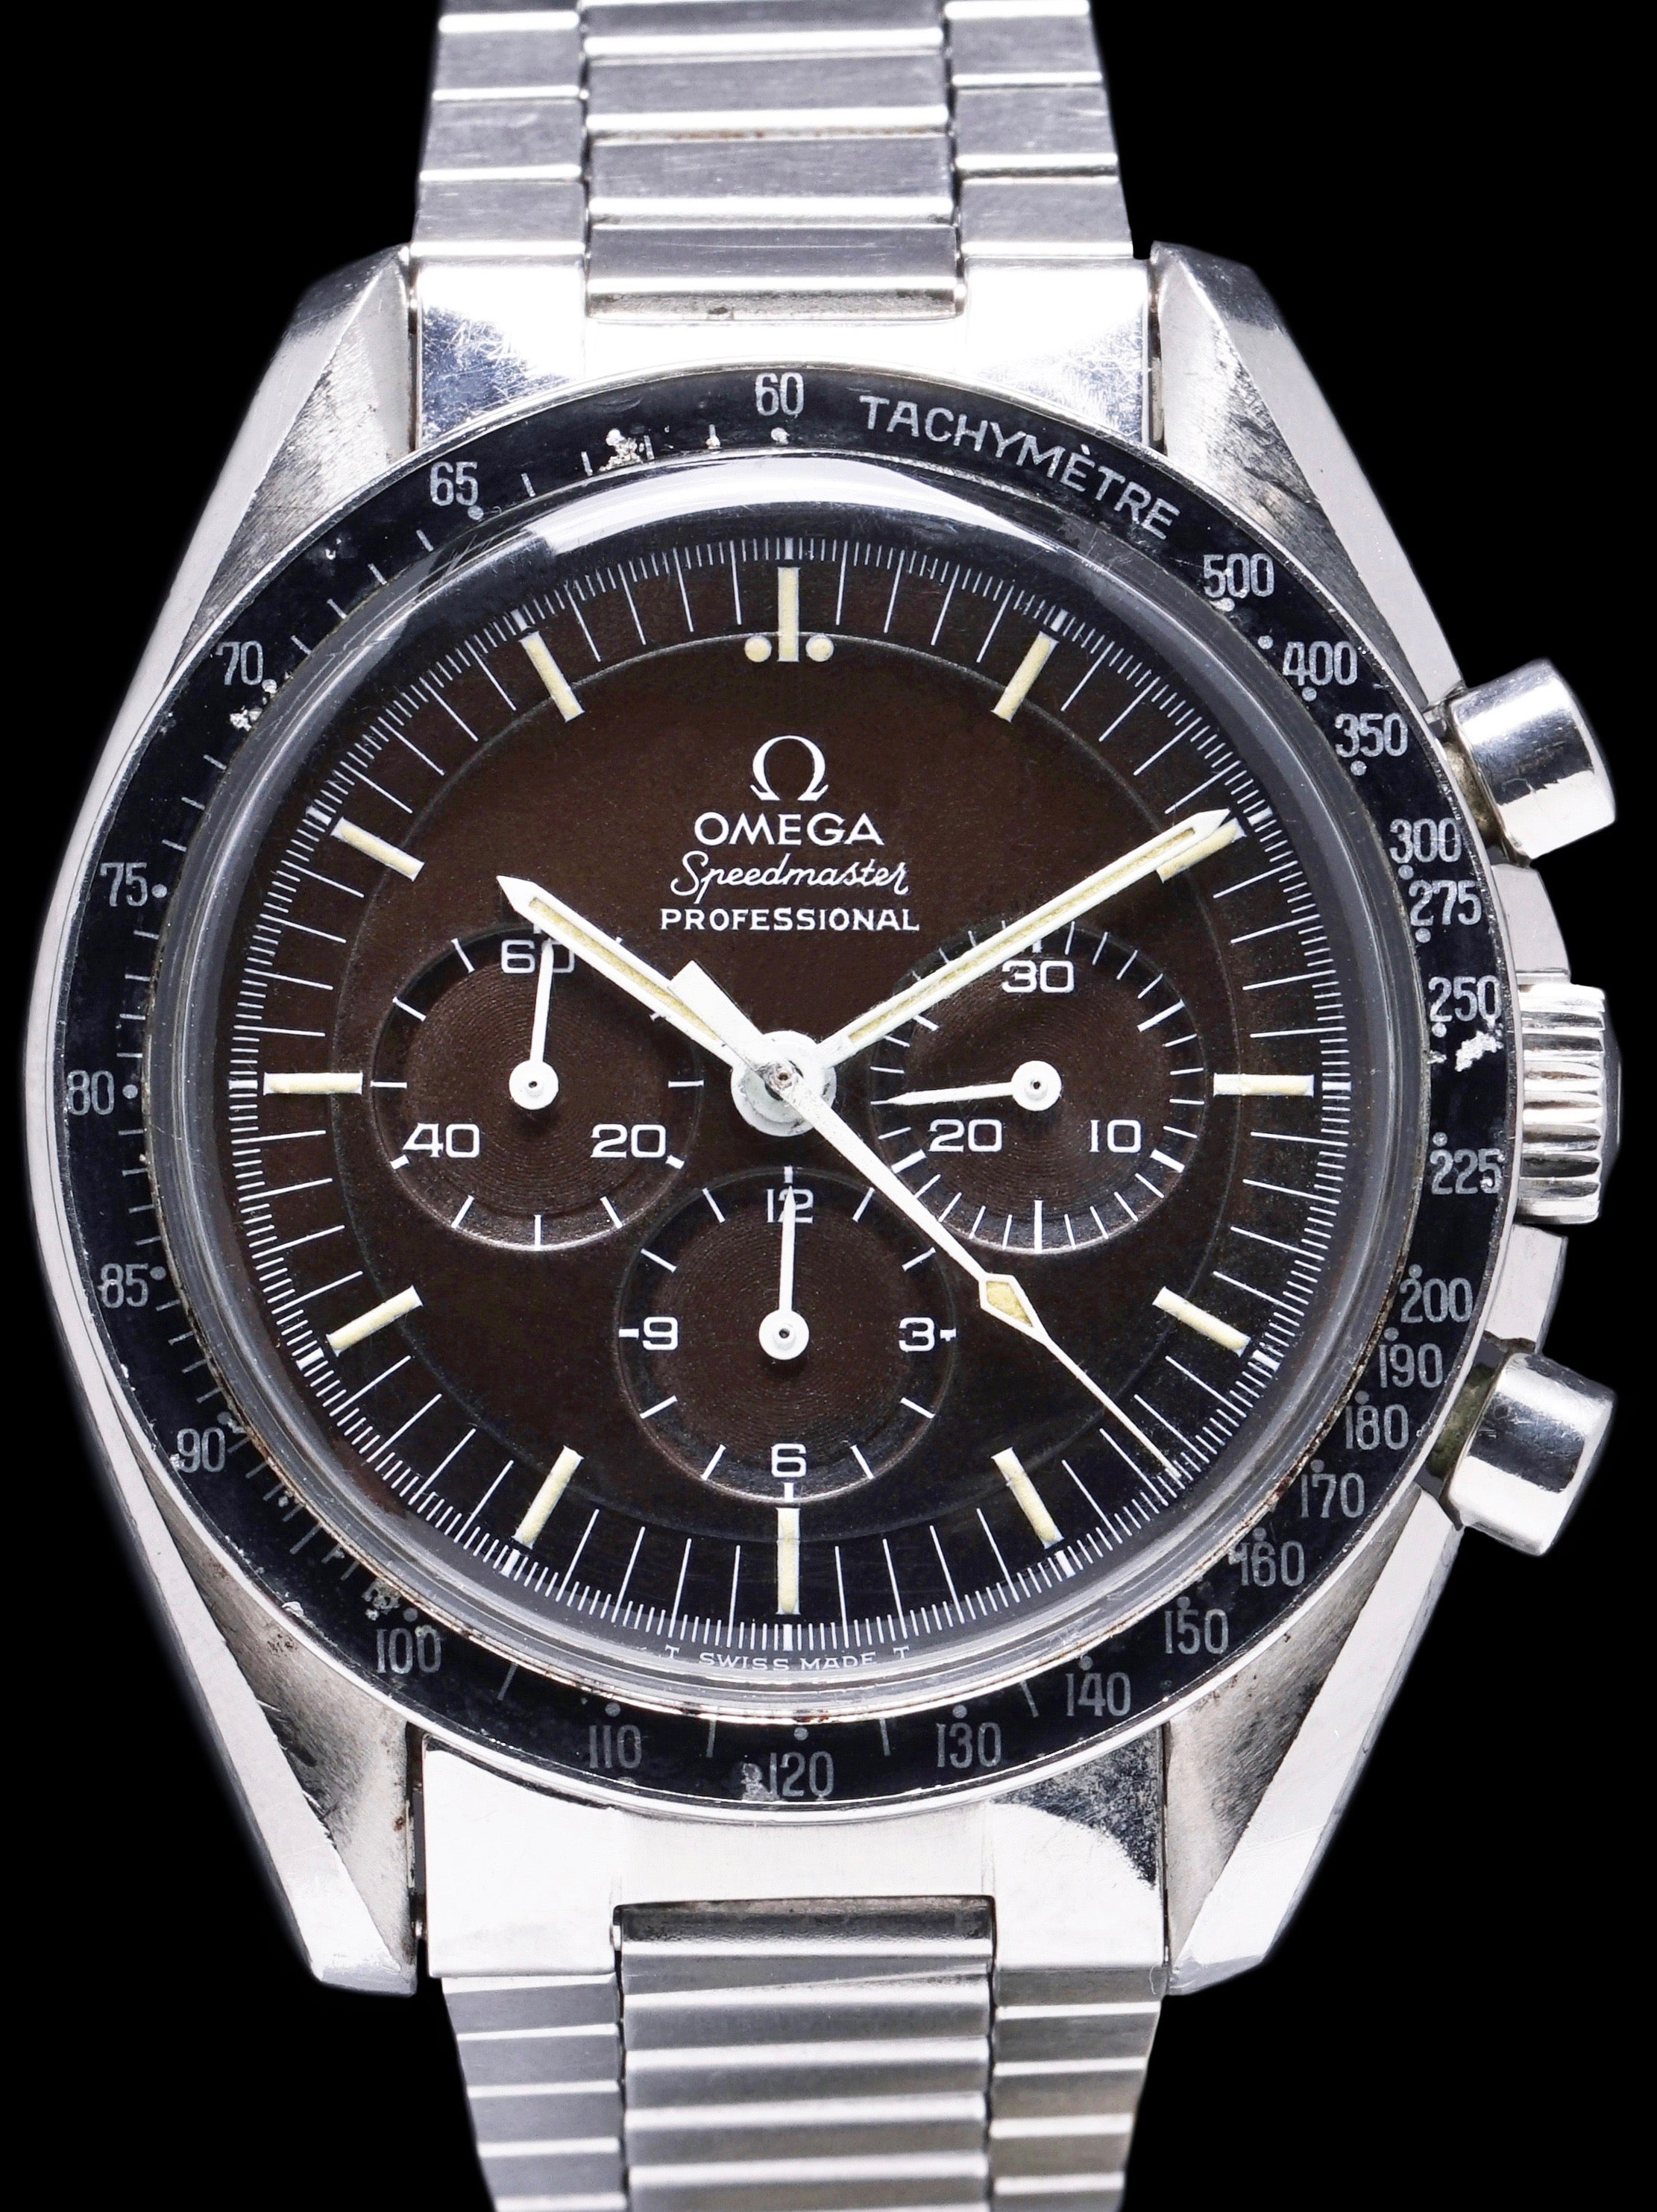 Tropical 1970 OMEGA Speedmaster Professional (Ref. 145.022) Cal. 861